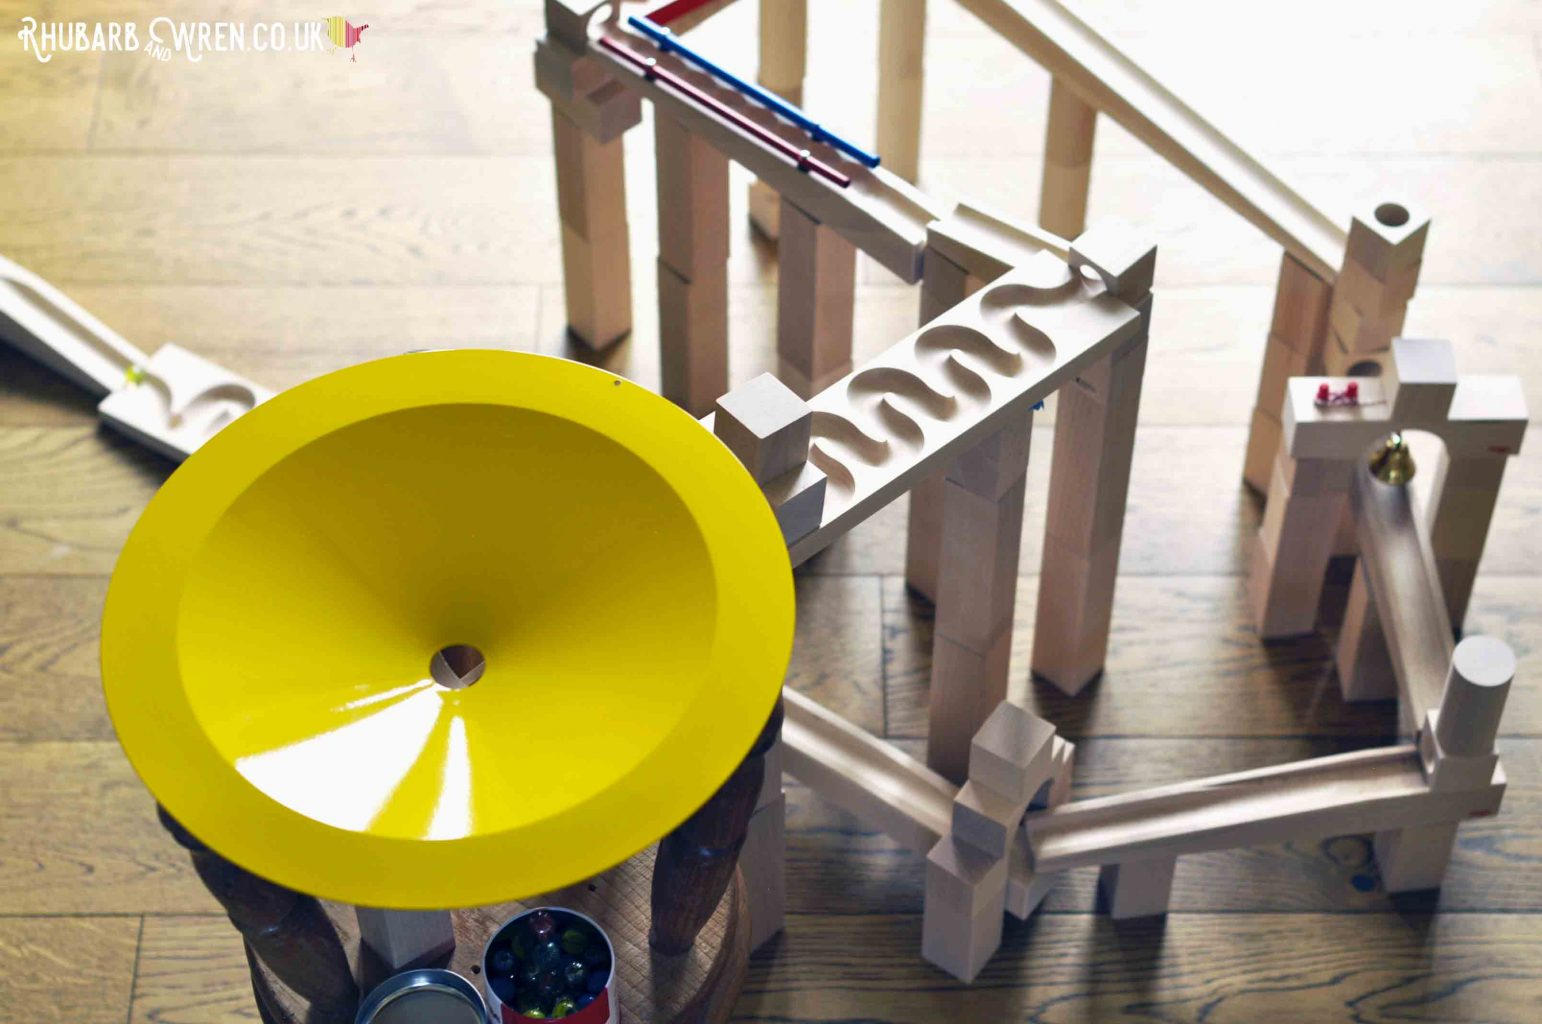 Looking down on wooden marble run including large yellow metal 'whirlpool' dish funnel